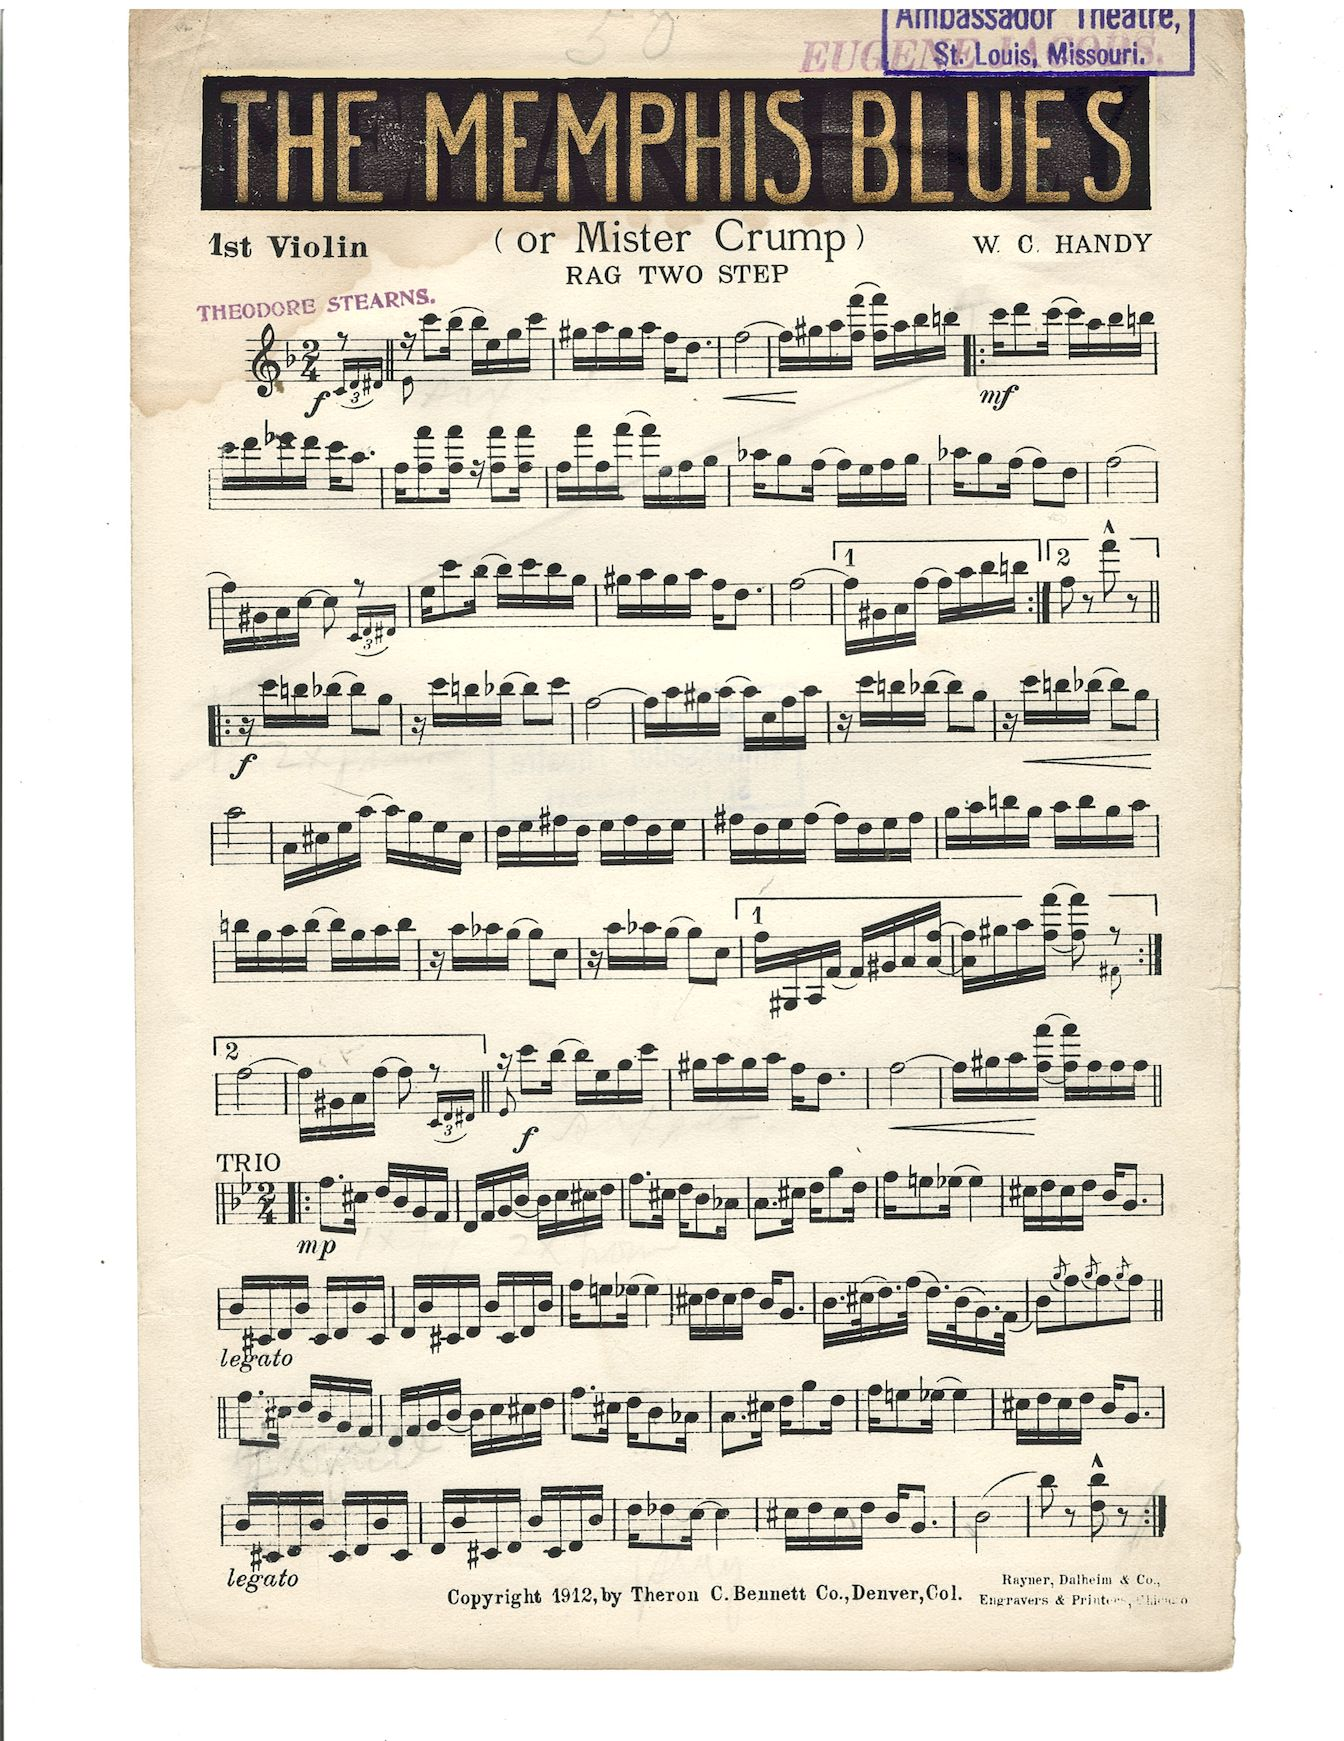 W.C. Handy's 1912 violin part for 'Memphis Blues'